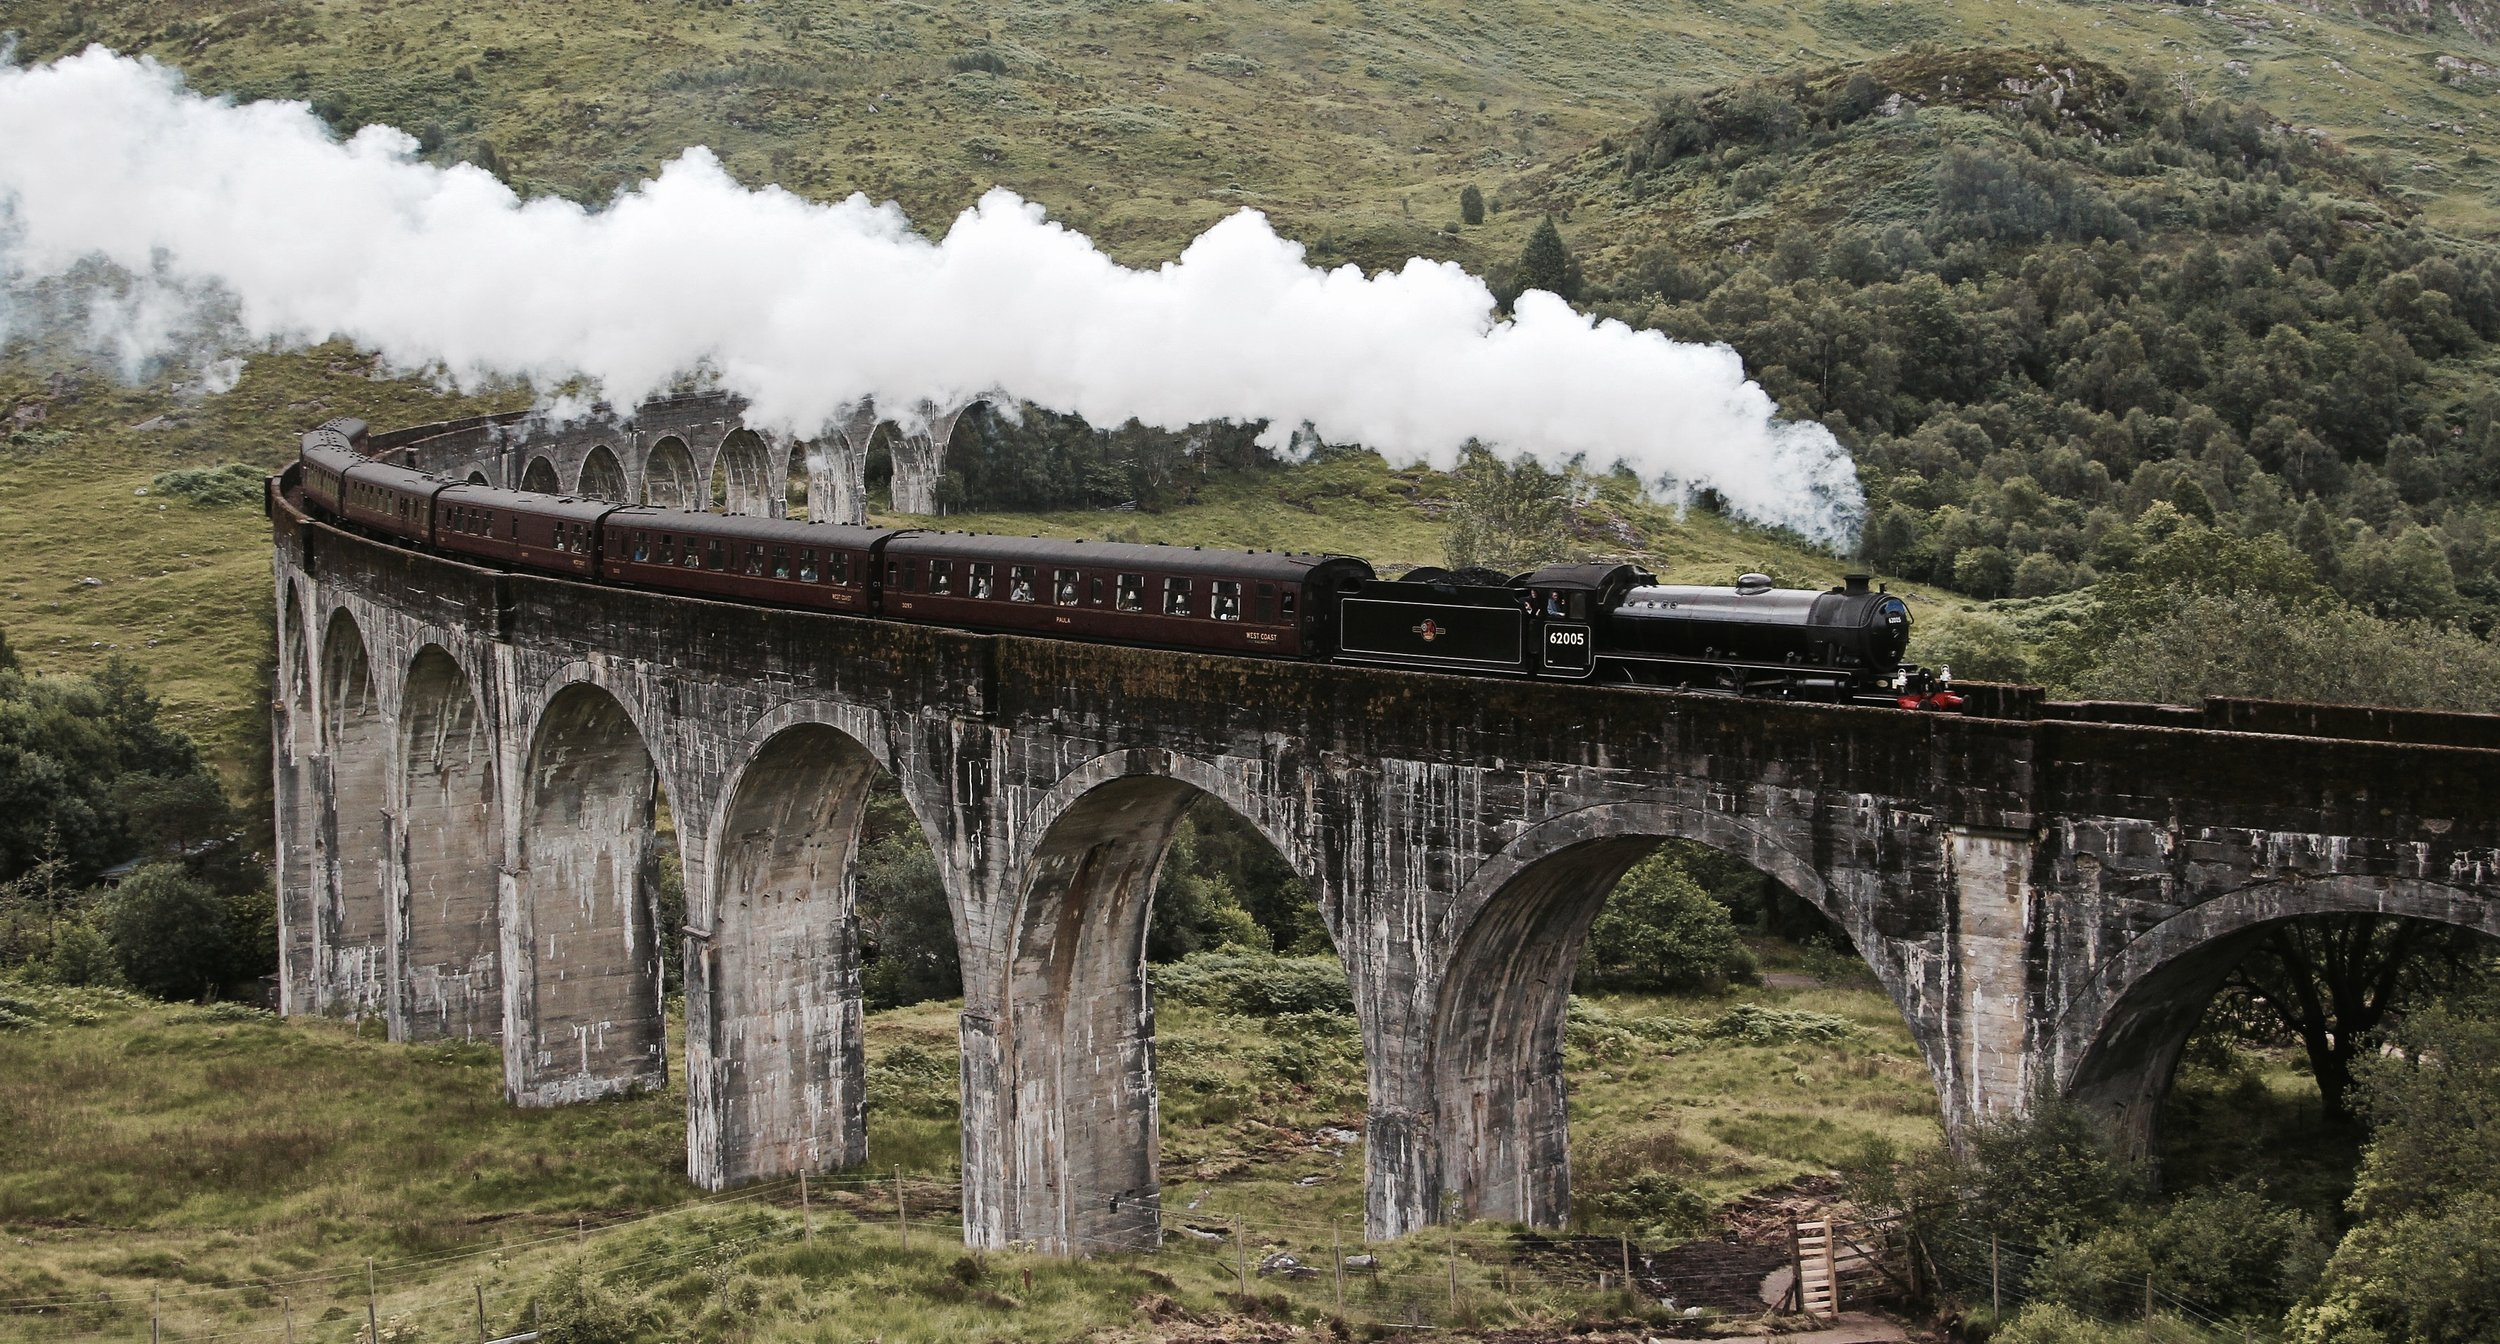 image source:https://commons.wikimedia.org/wiki/File:A_Scottish_Adventure-_The_Jacobite_over_Glenfinnan_Viaduct.jpg